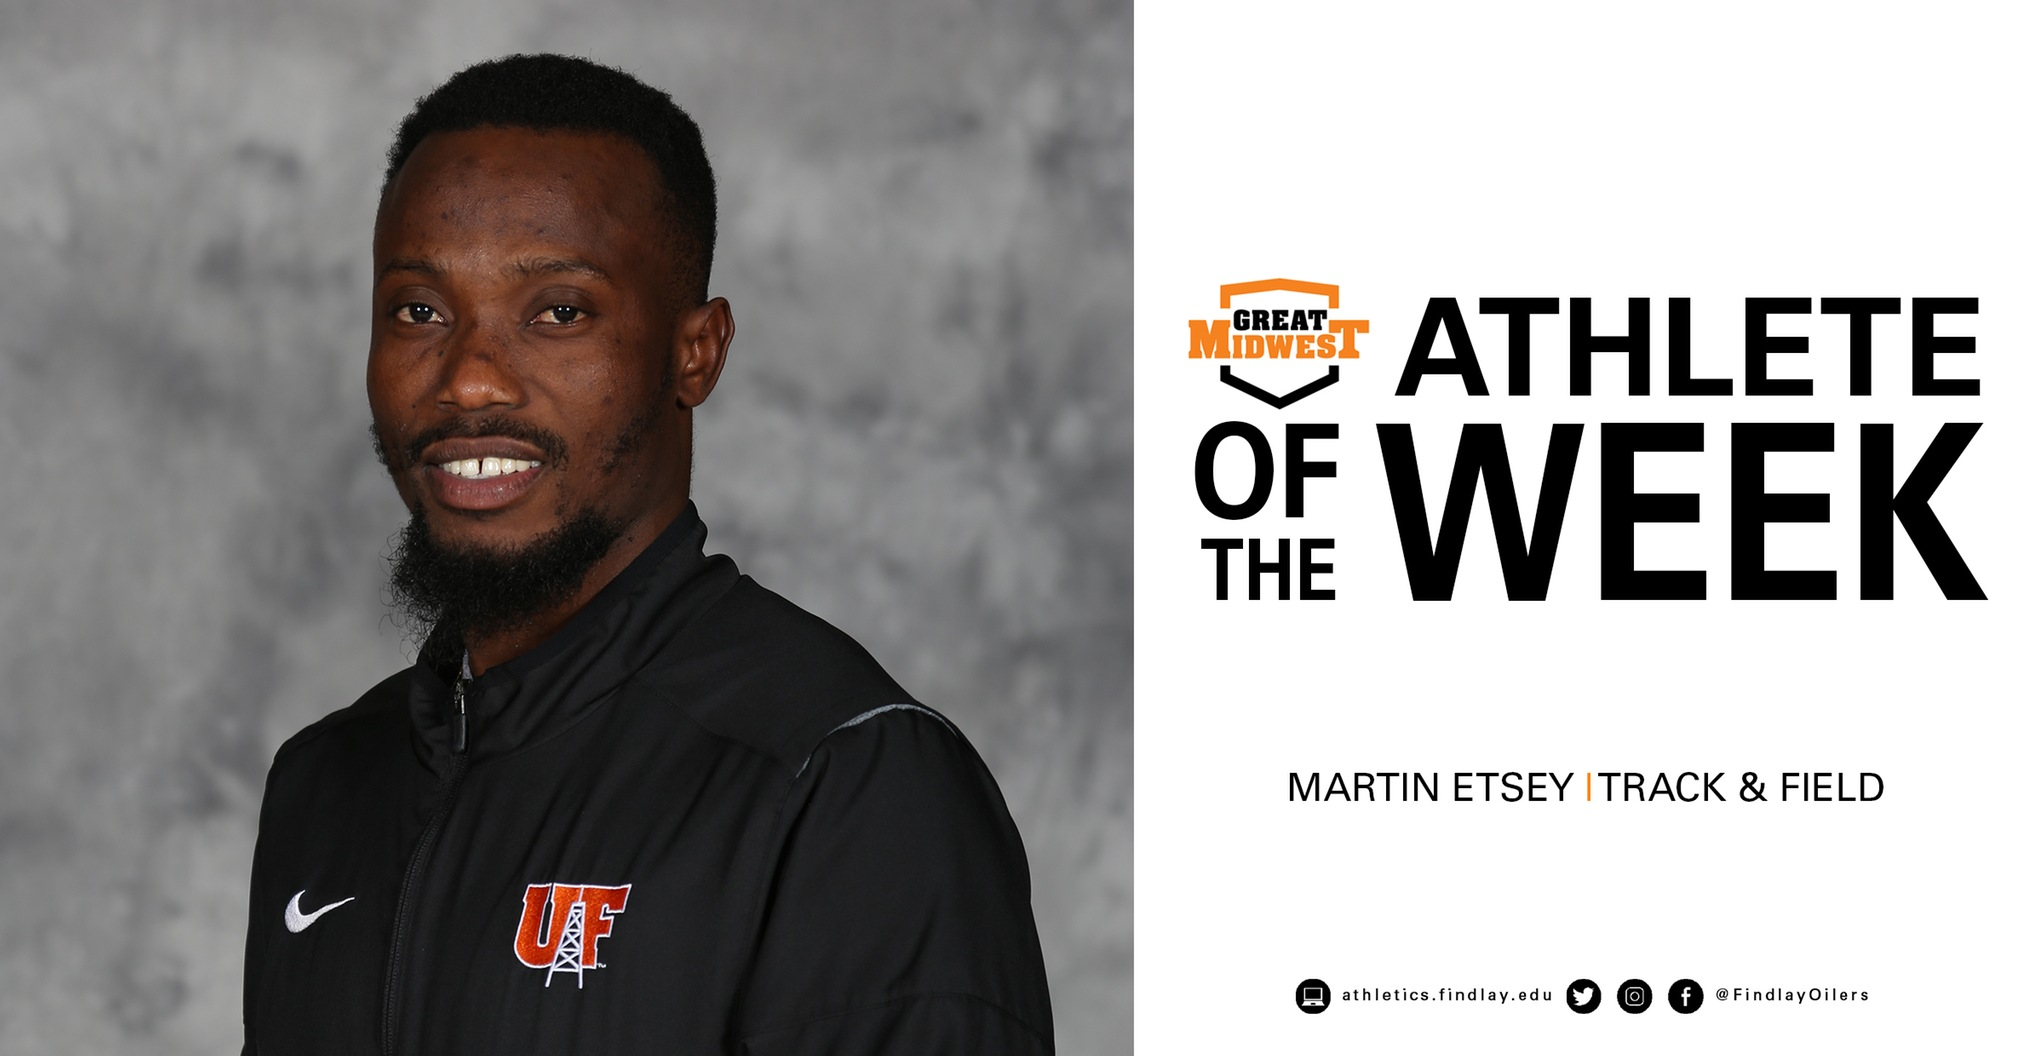 Etsey Earns Great Midwest Field Athlete of the Week